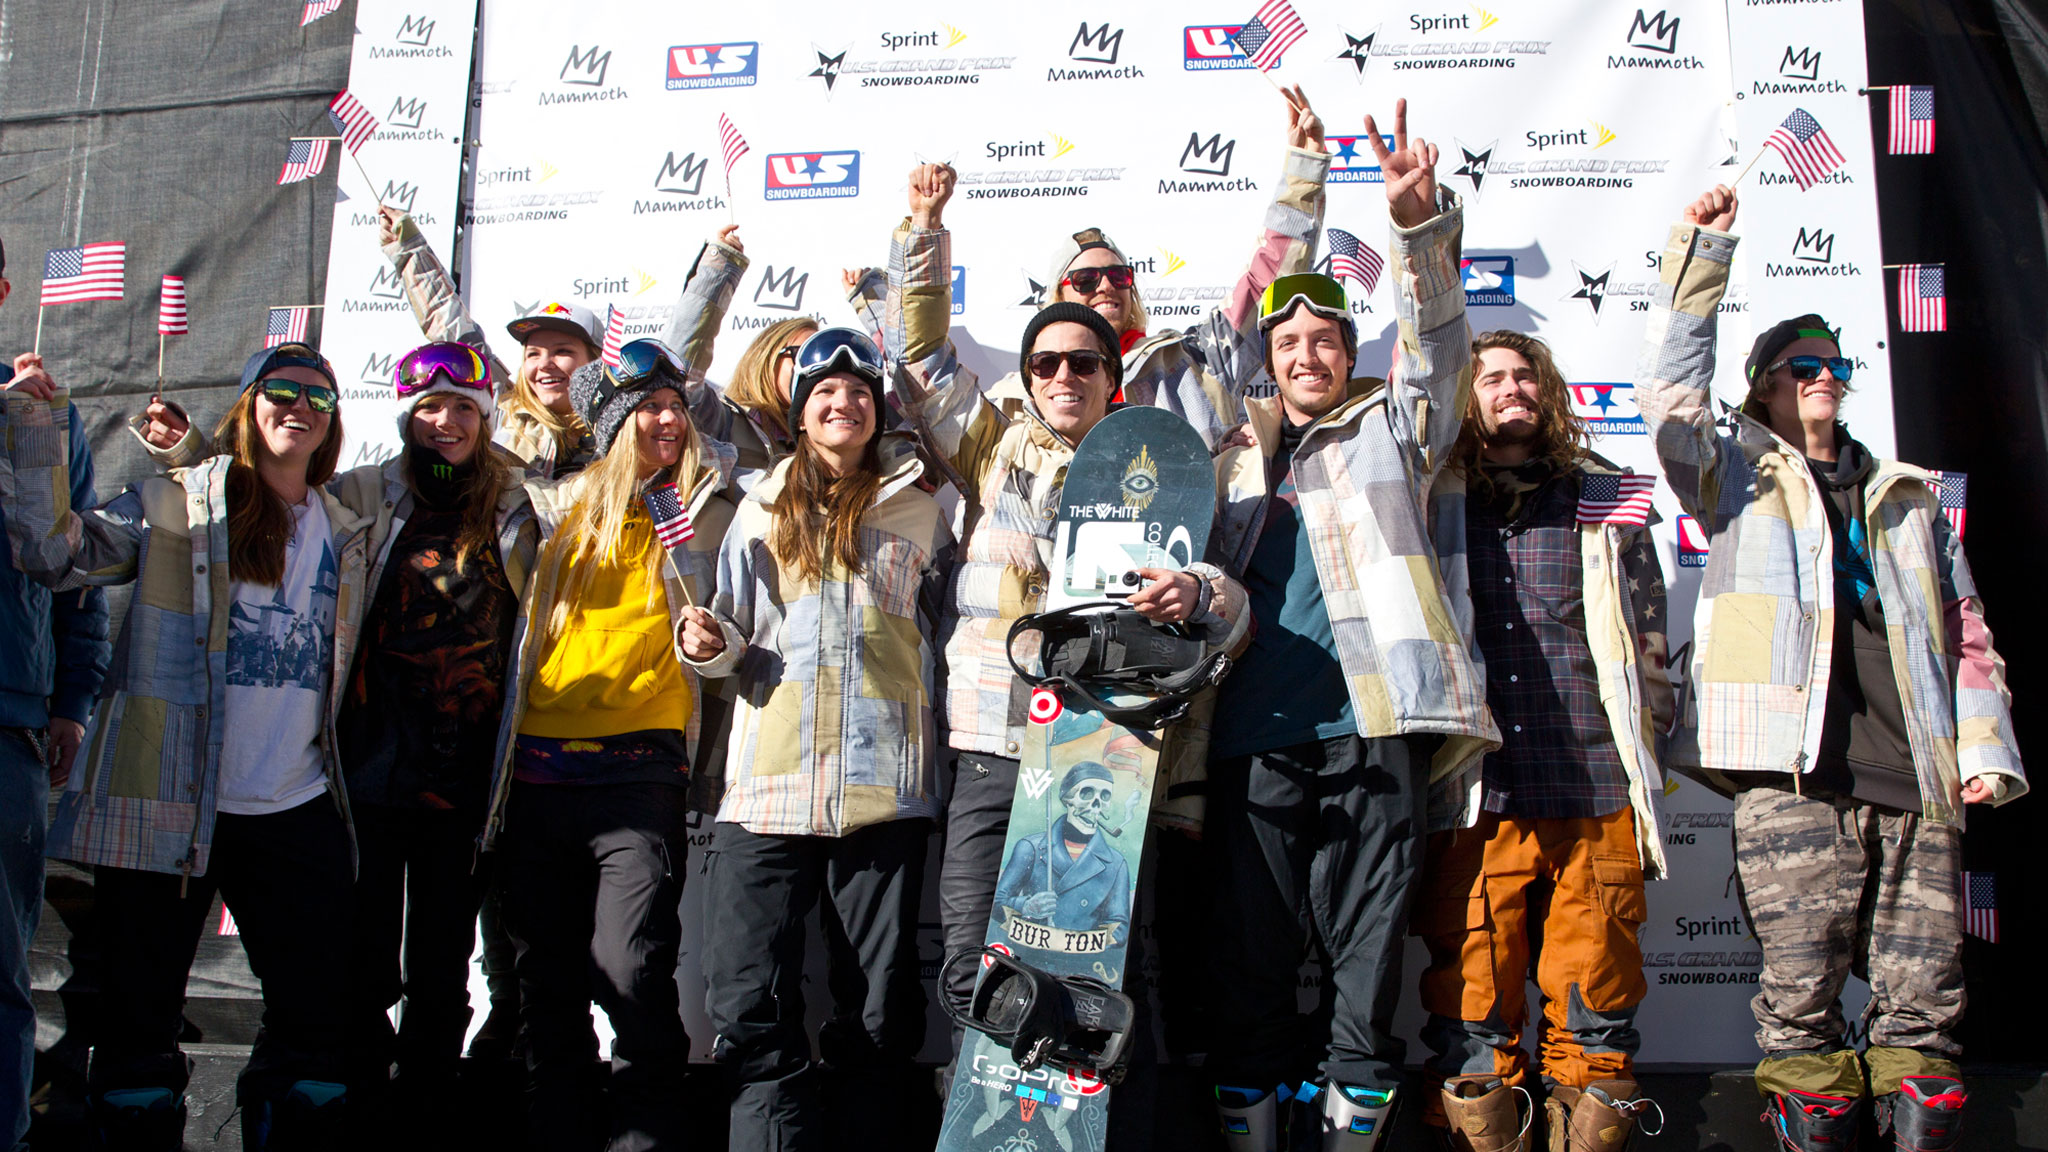 U.S. Olympic Snowboard Team